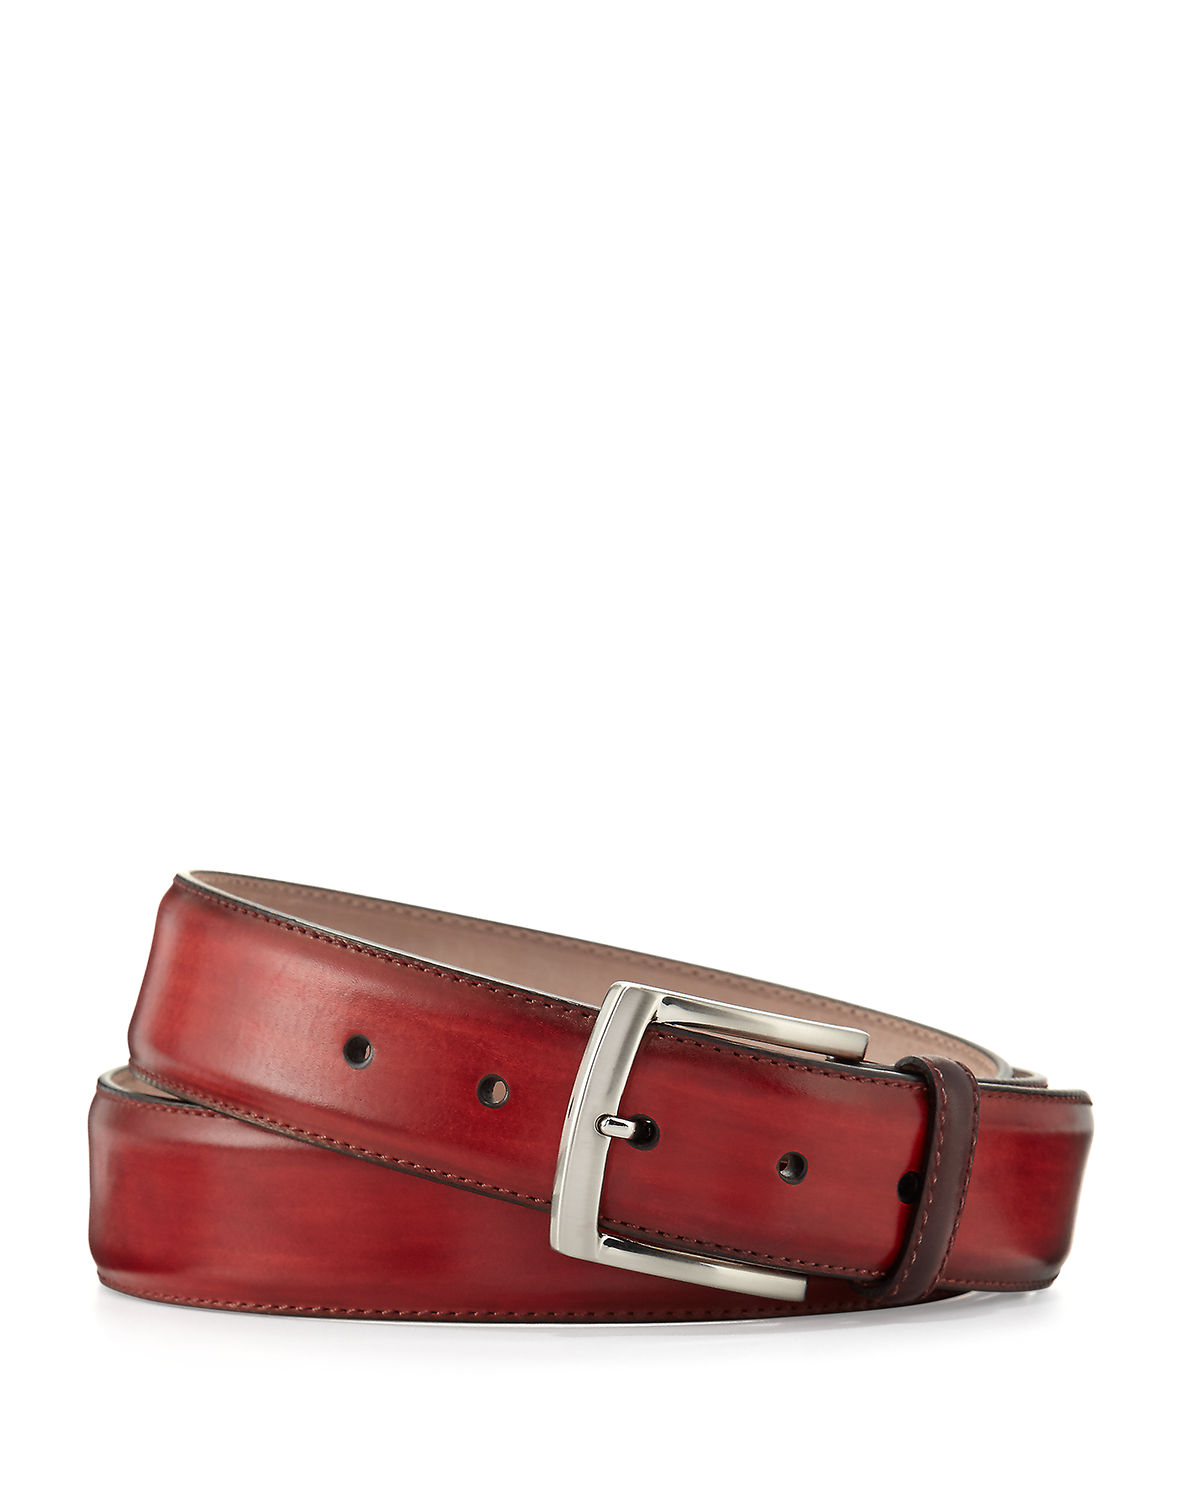 Neiman Marcus Belts SQUARE-BUCKLE CALF LEATHER BELT